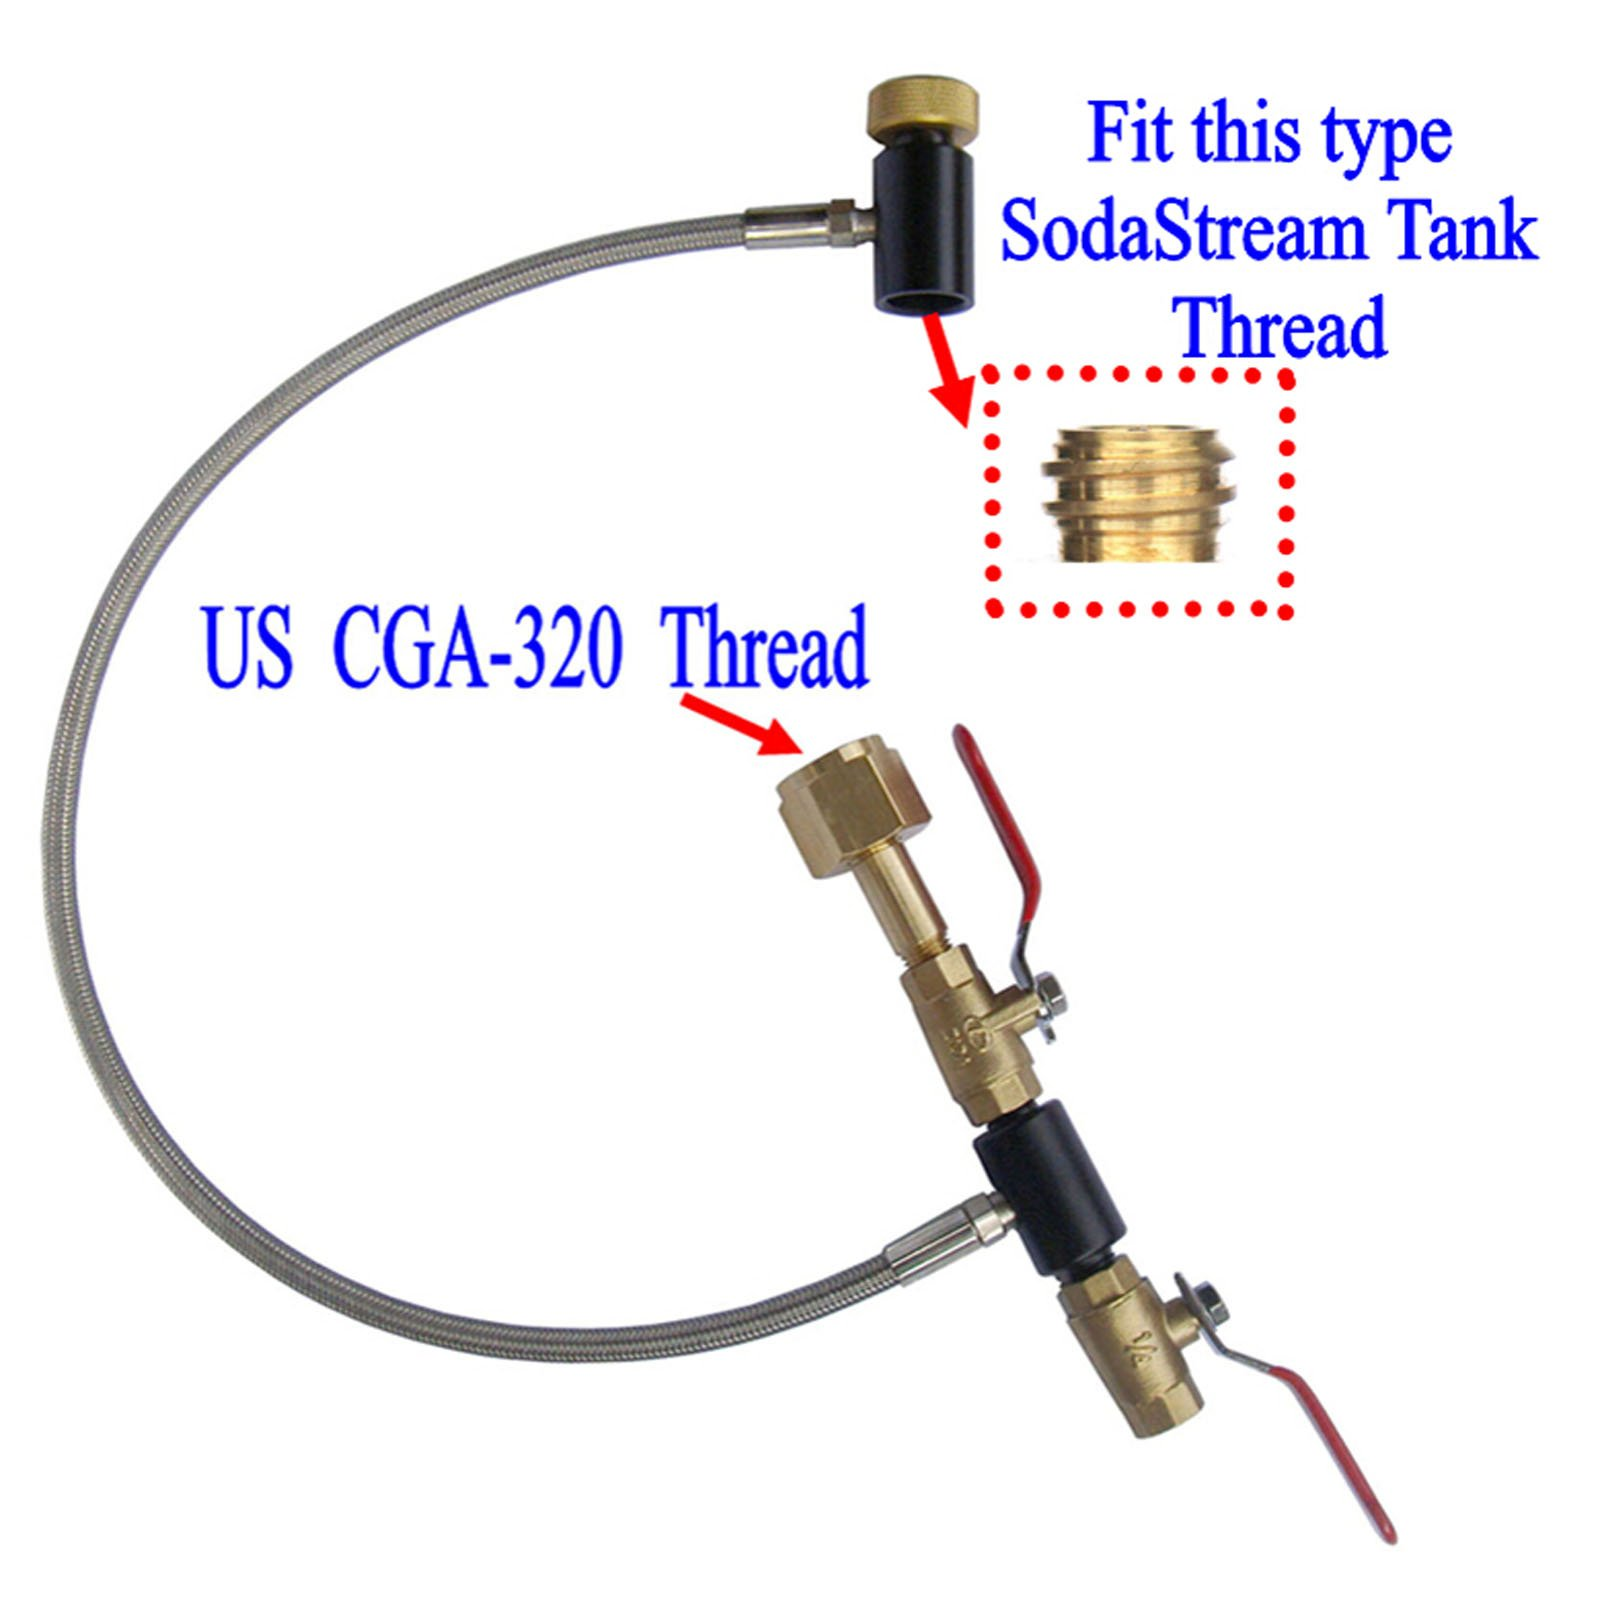 New Soda Club High Pressure Hose CO2 Fill Station For Filling Soda Tank (2 valve,24'' Stainless Steel Braided Hose)